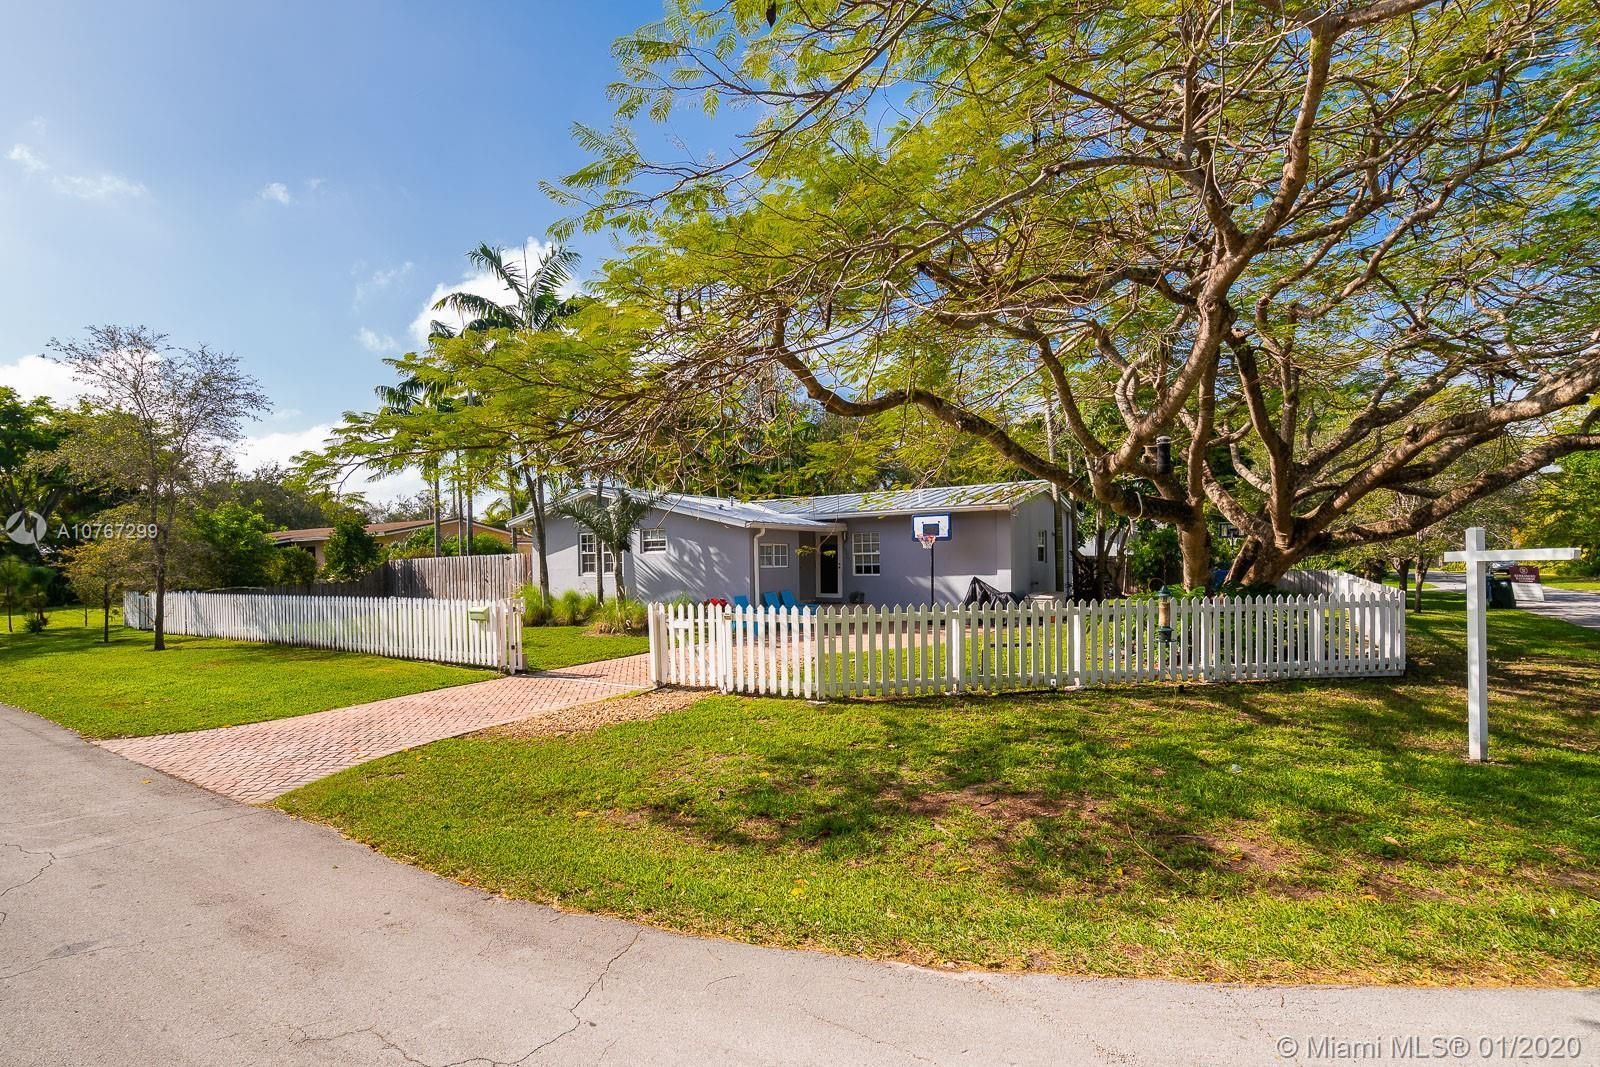 Adorable, white picket fenced family-sized home in the heart of SoMi located on a quiet, tree lined